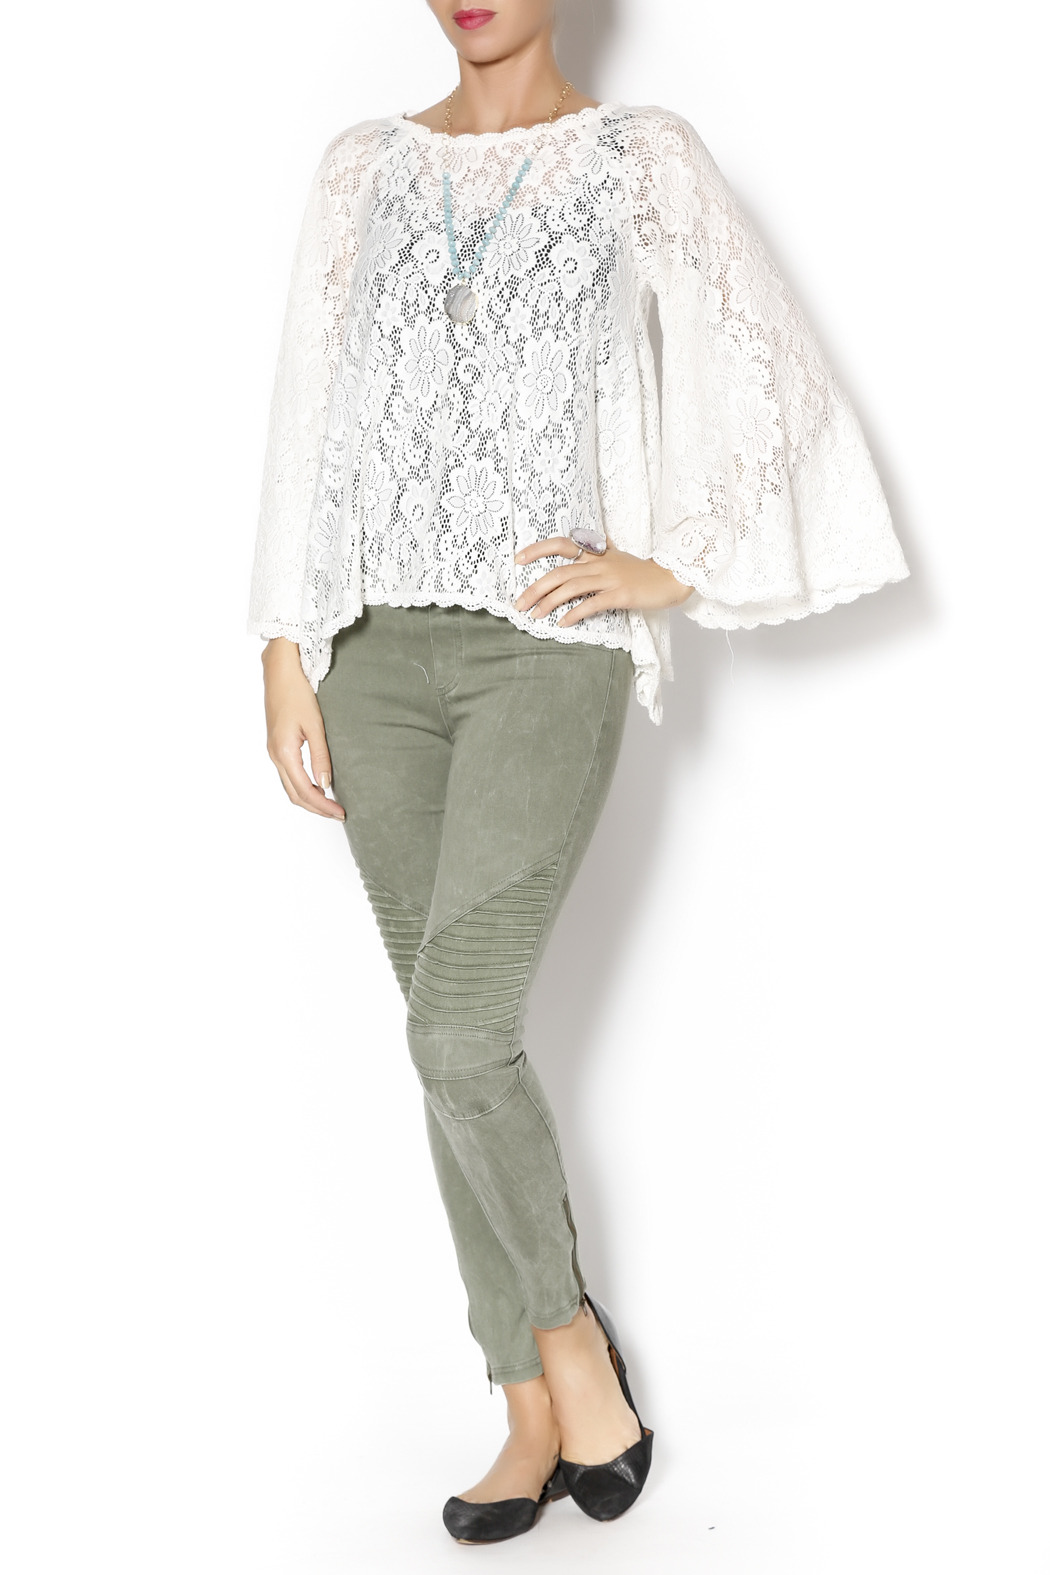 Gina Louise Lace Bell Sleeve Top - Front Full Image